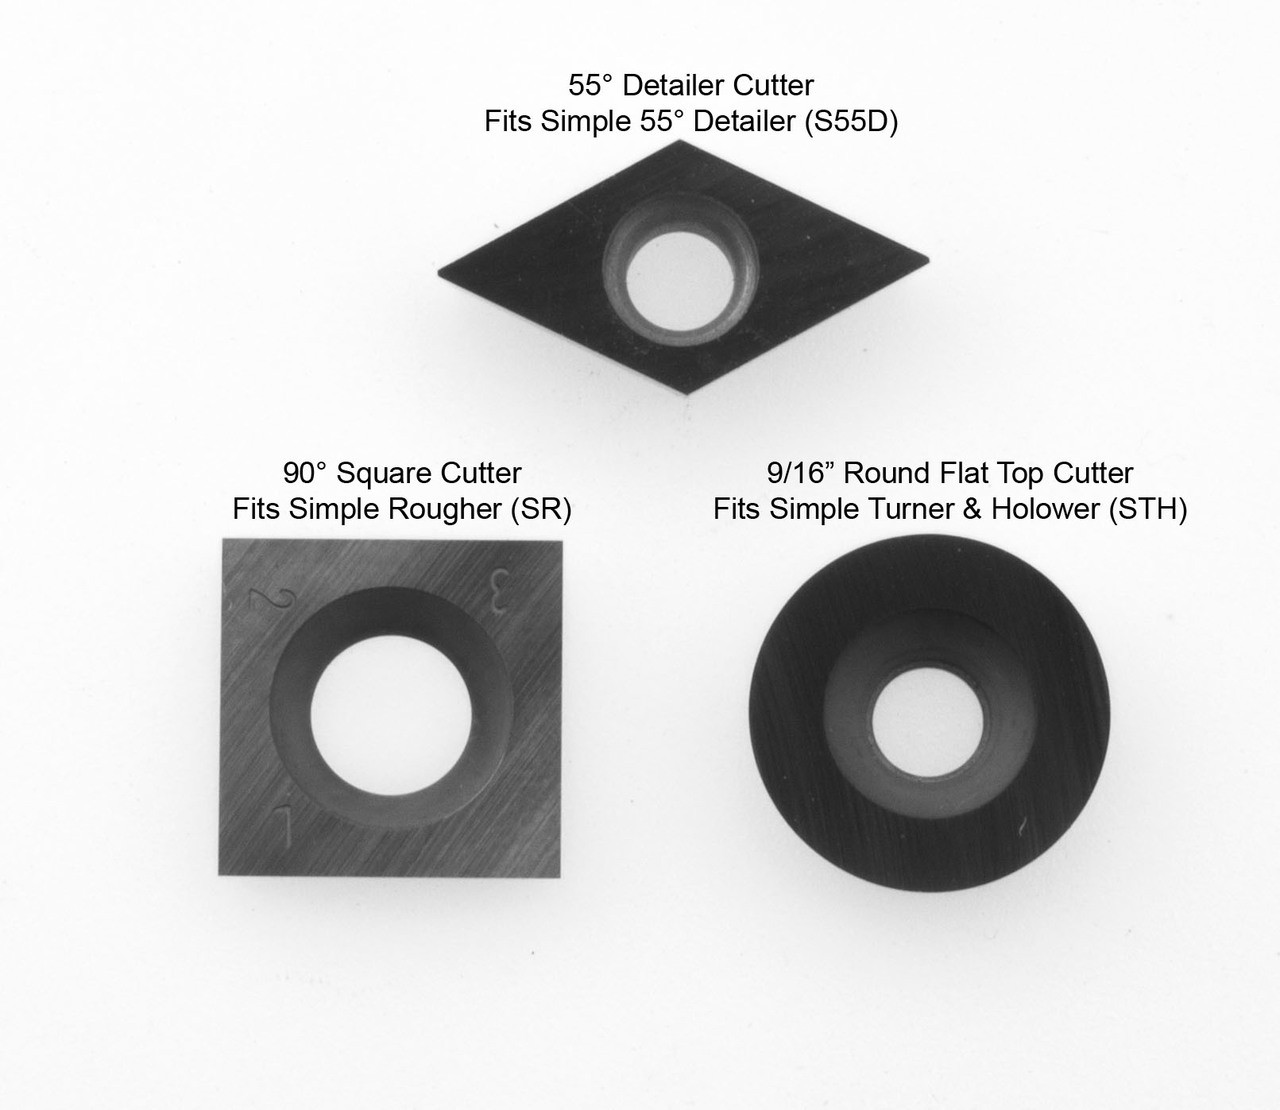 3 Replacement Carbide Cutters for 3 Tool Set with Simple Turner and Hollower. Shown here with 90° square cutter for Simple Rougher.